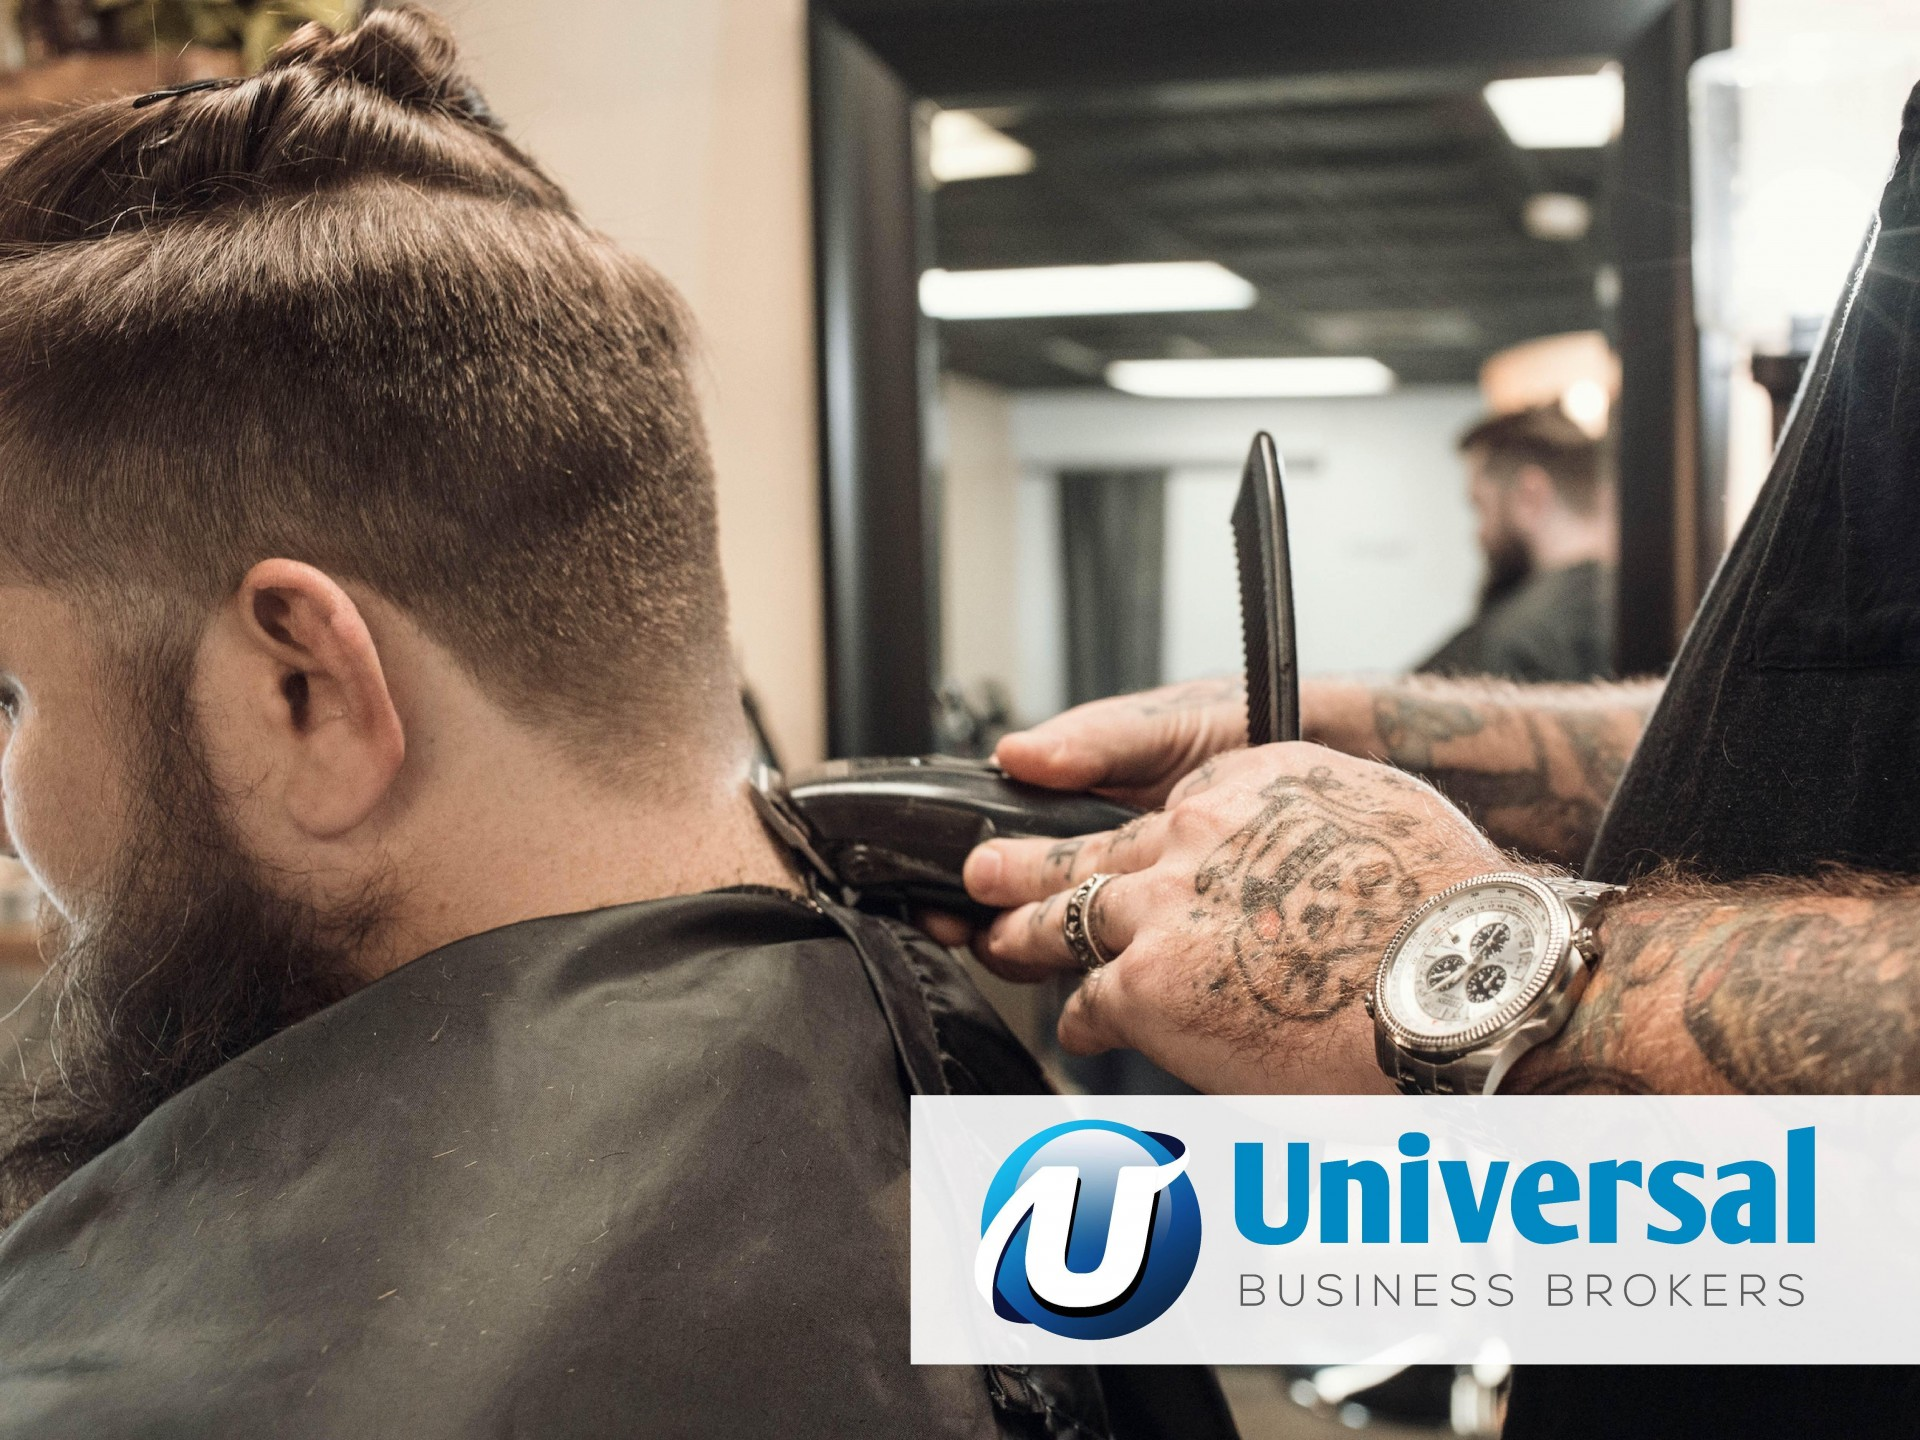 Hair Dressing Salon Business for Sale Sydney